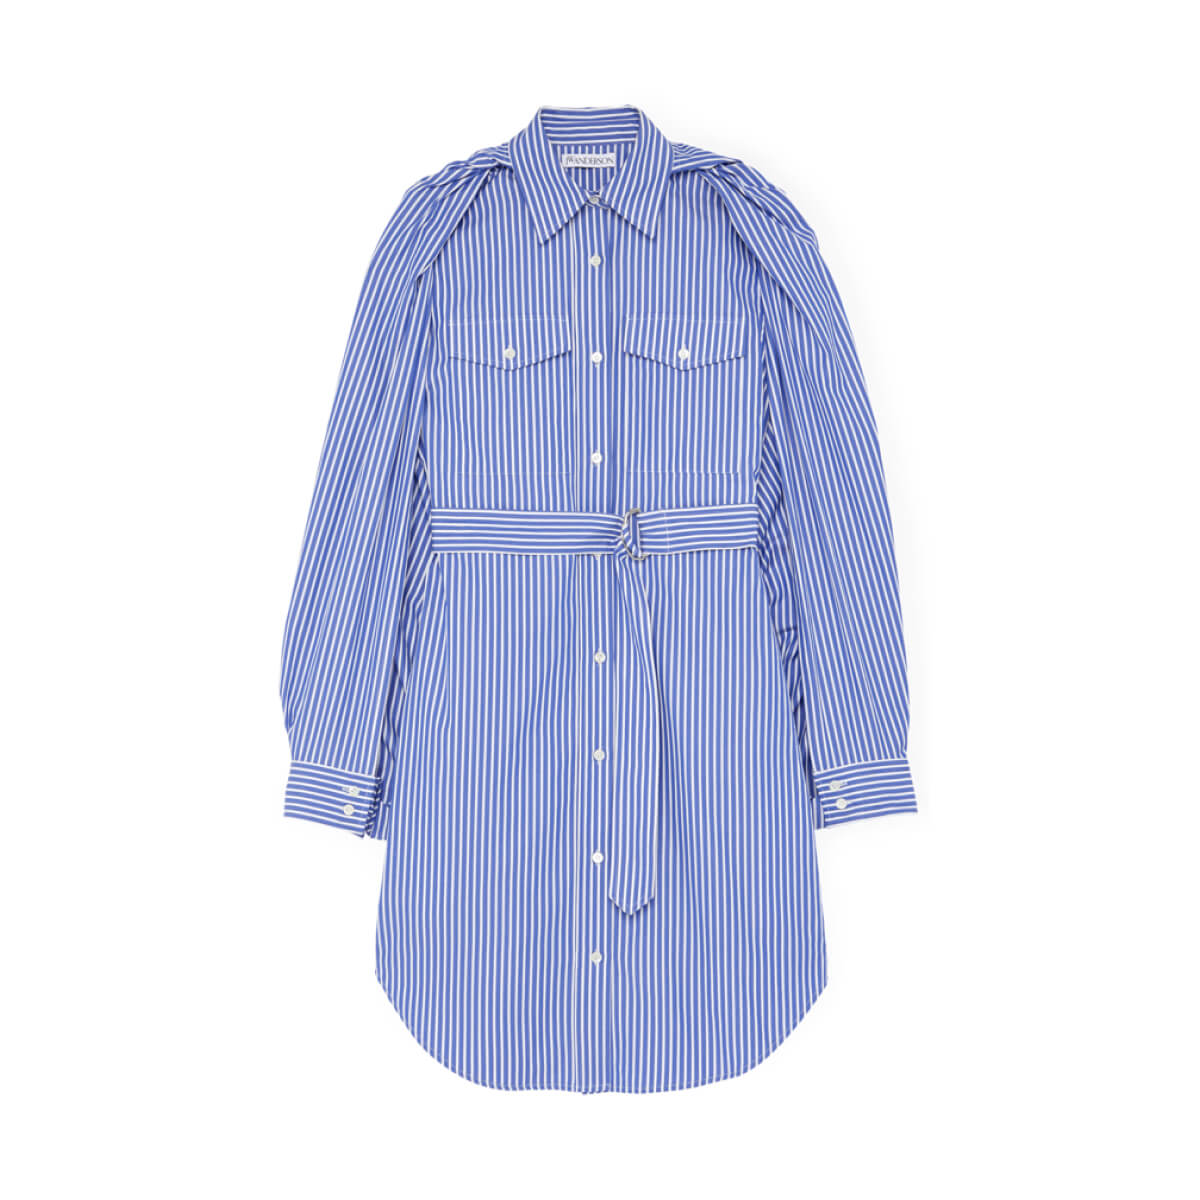 JW ANDERSON SHIRTDRESS